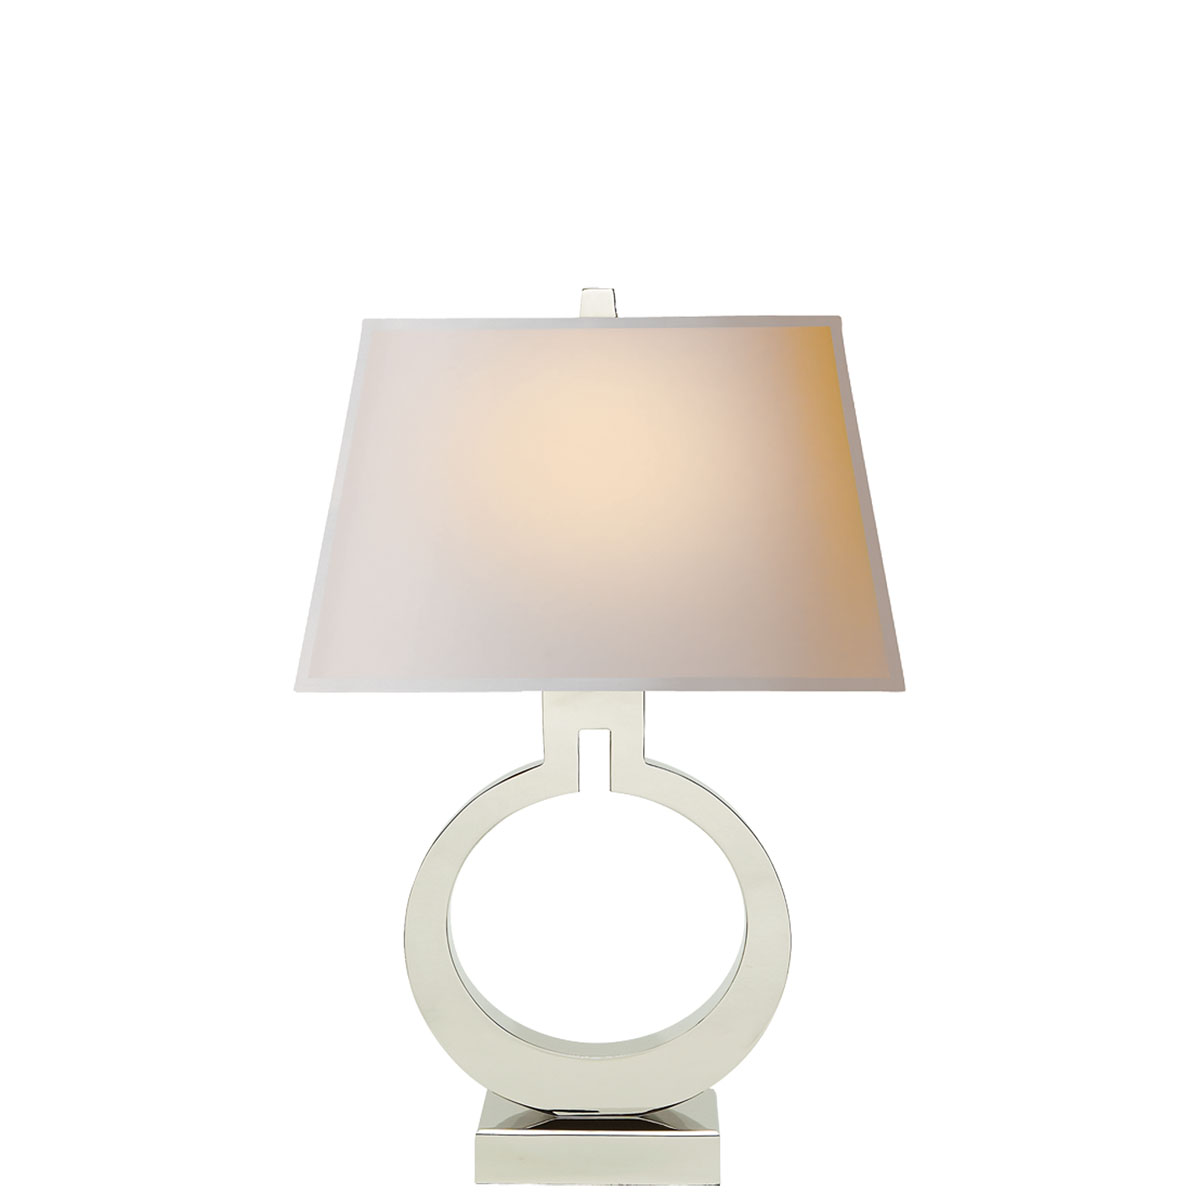 Visual Comfort Large Ring Table Lamp, Table Lamp